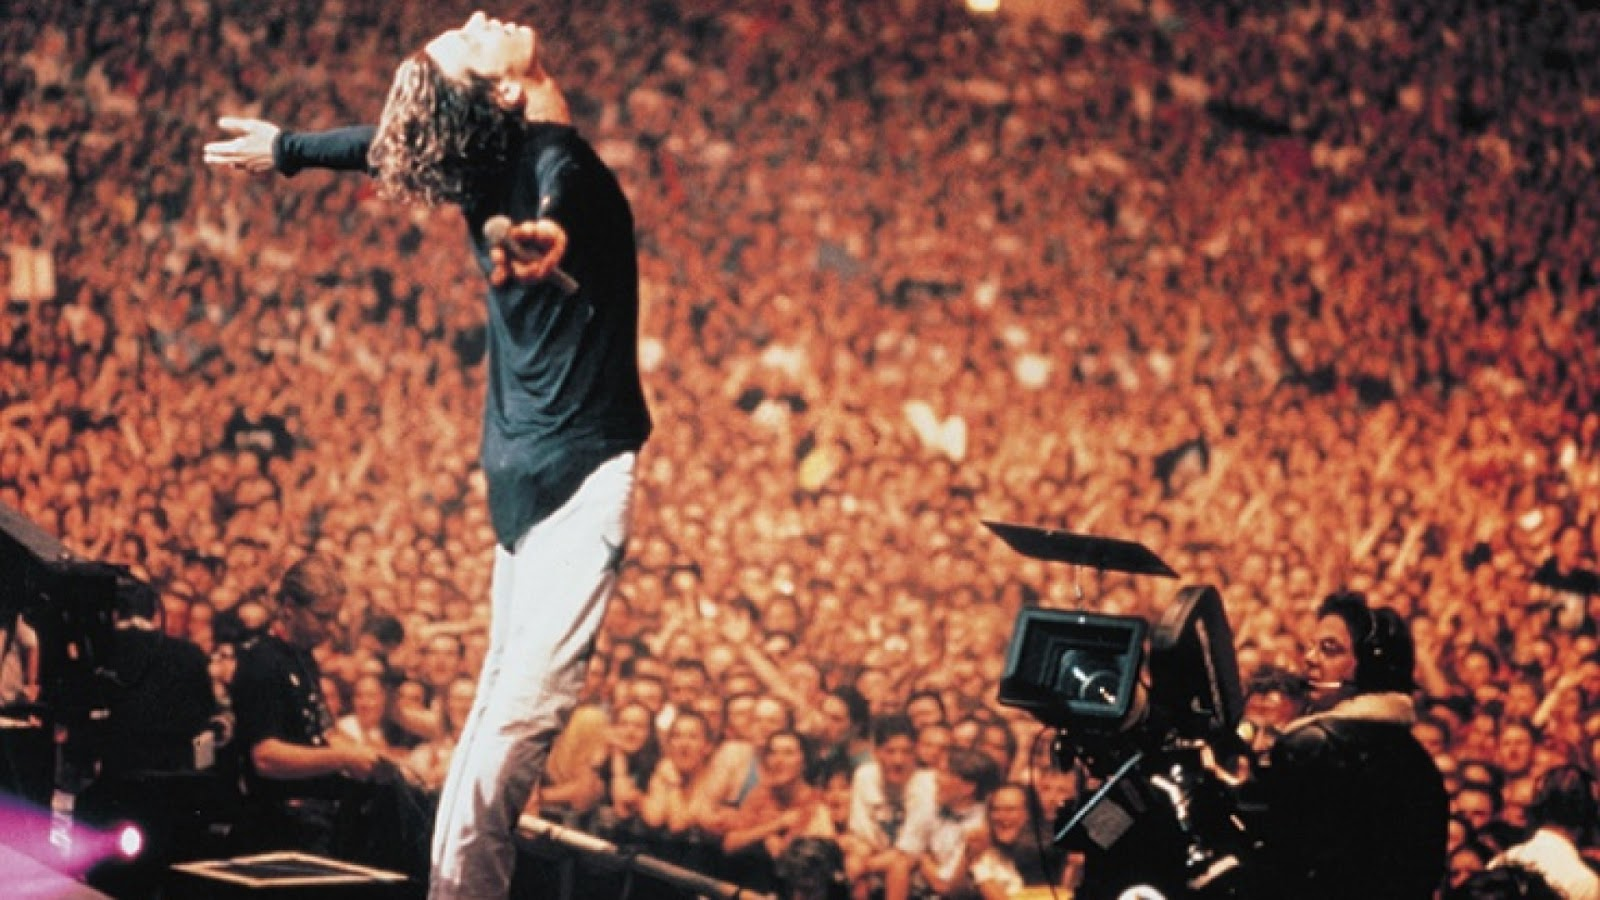 Strange tales michael hutchence after 20 years summer xs wembley stadium july 1991 nvjuhfo Gallery